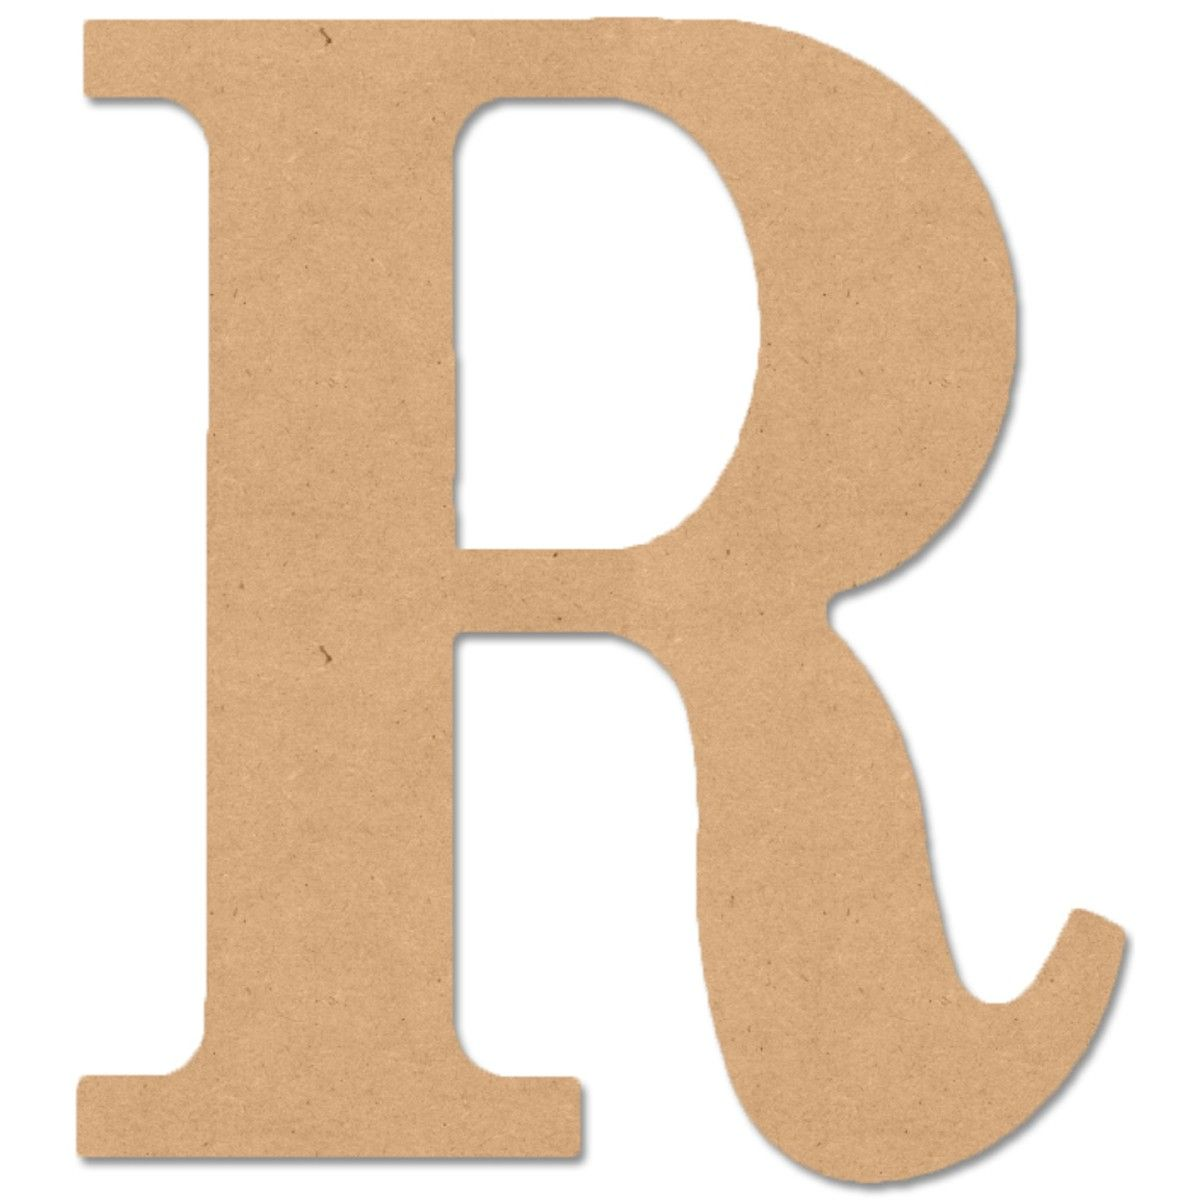 Similiar Letter R In Different Fonts Keywords